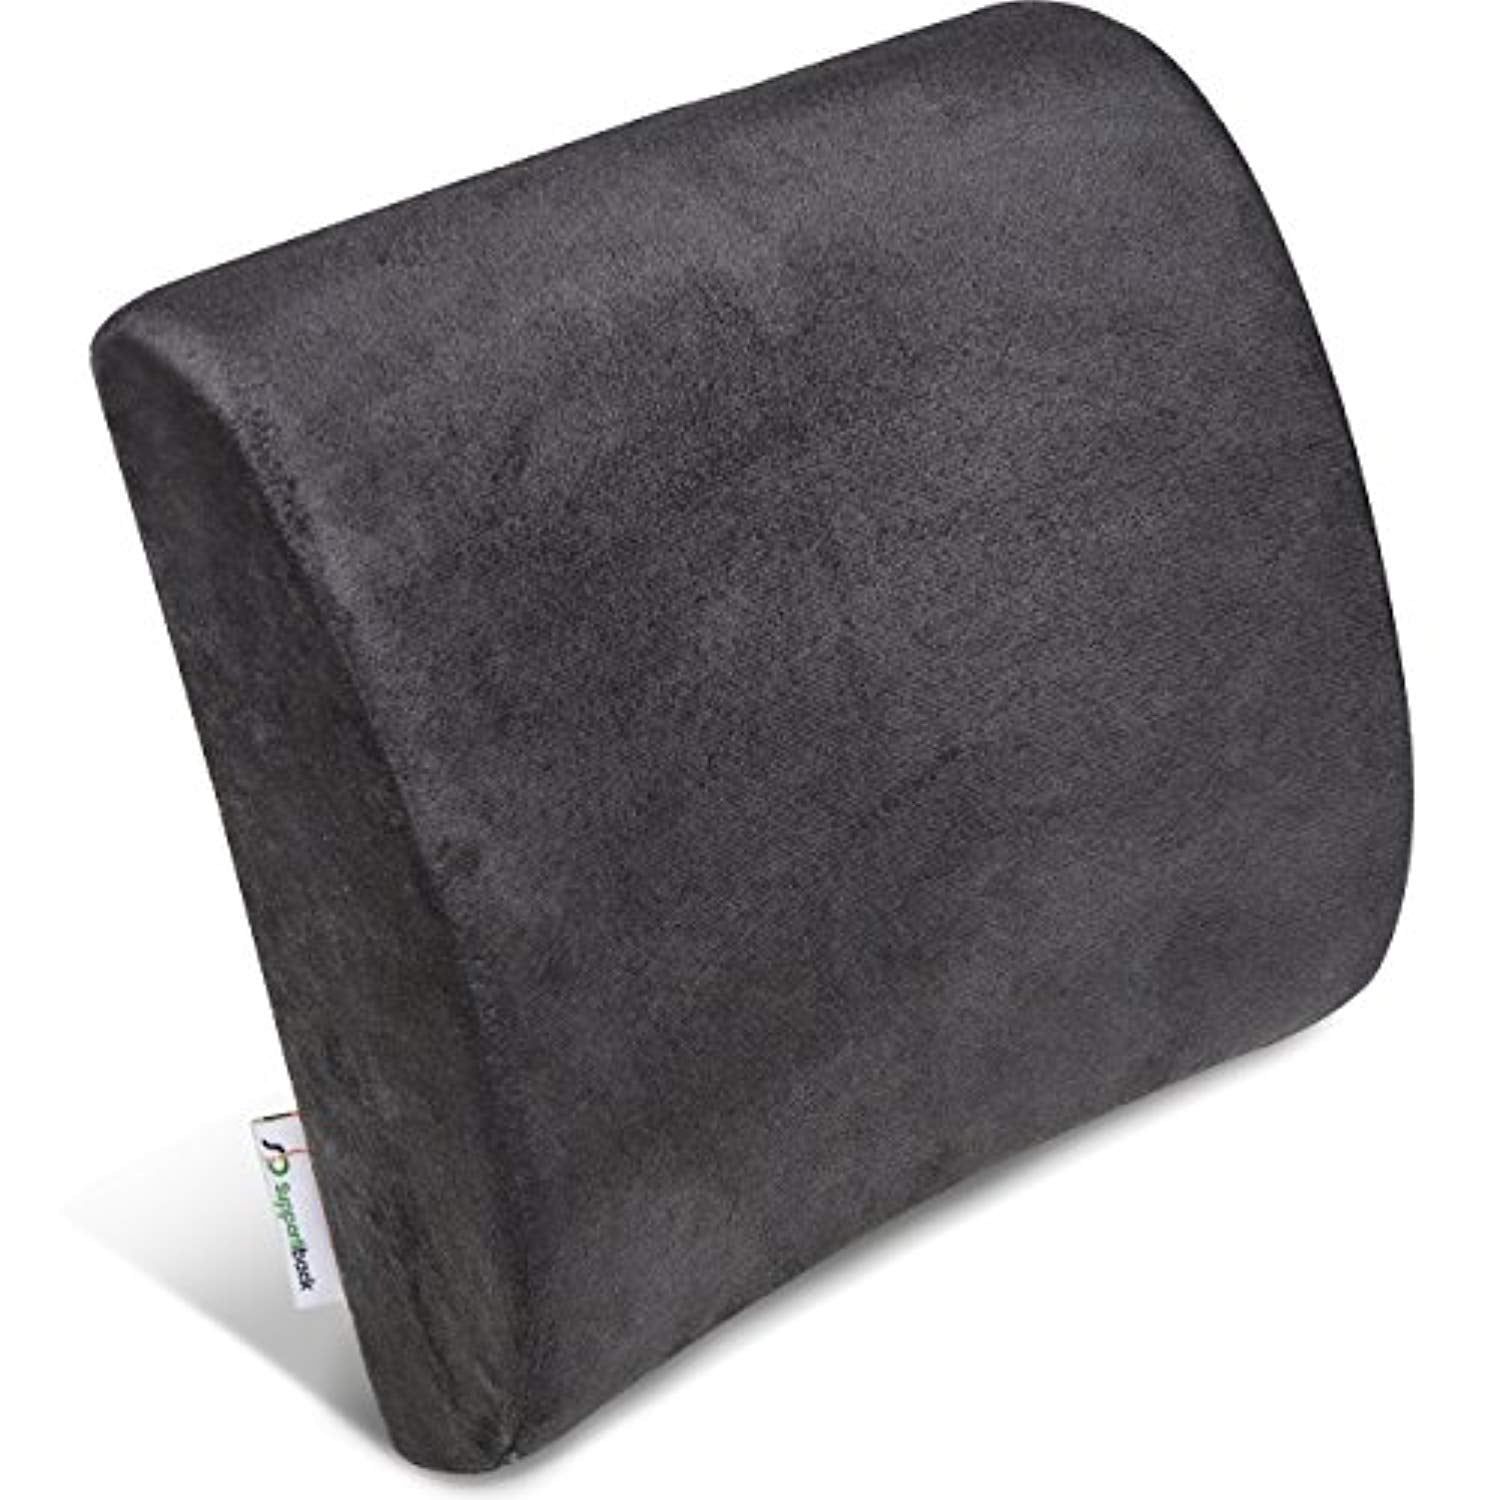 Posture Therapy Memory Foam Lumbar Support Cushion